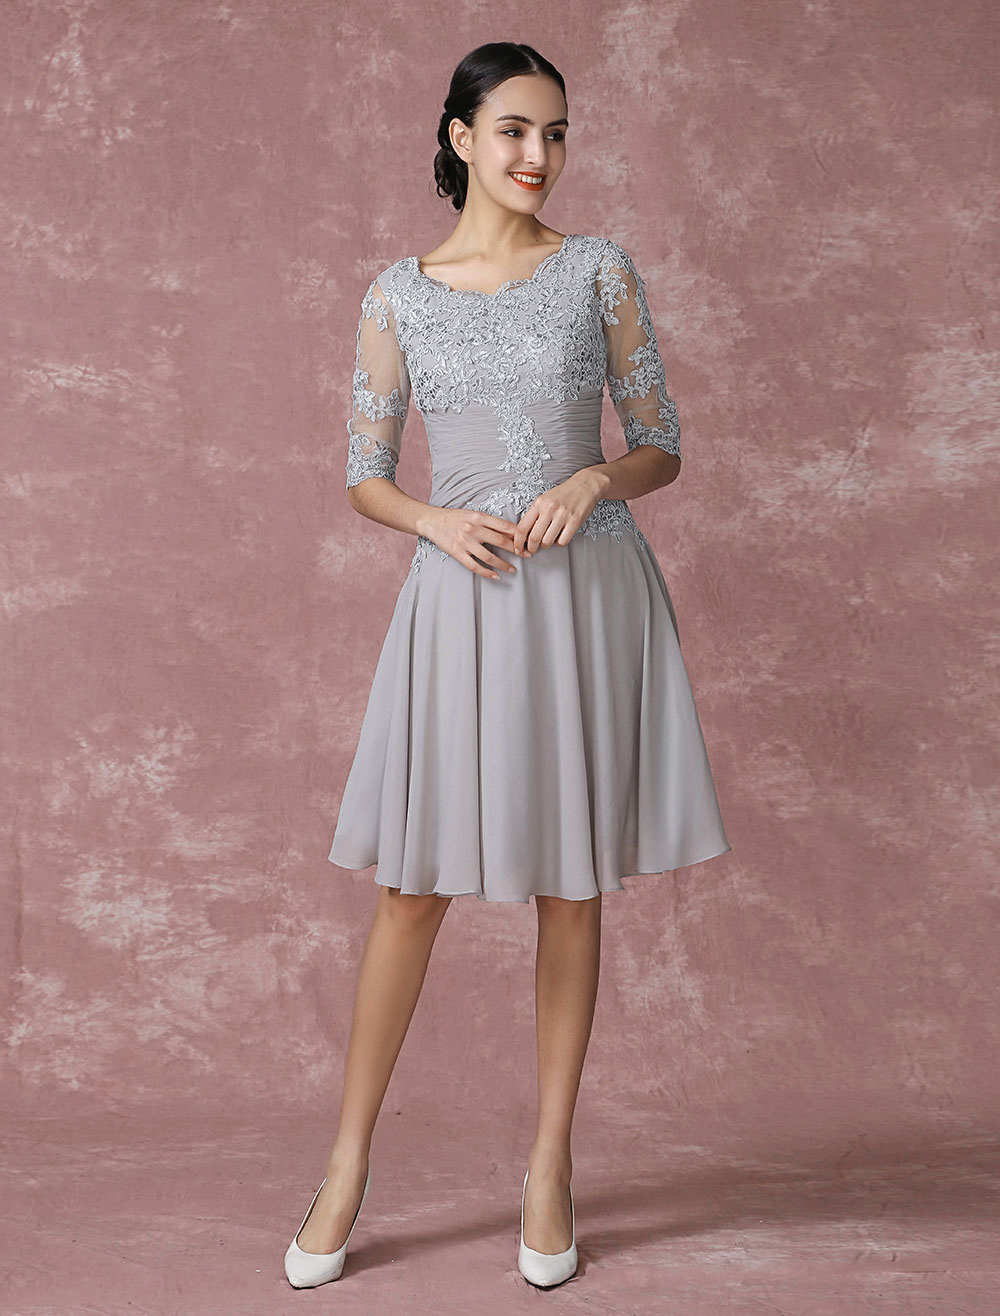 Buy Chiffon Cocktail Dress Applique Pleated Mother Of The Bride Dress A Line Illusion Half Sleeve Party Dress In Knee Length Milanoo for $112.49 in Milanoo store